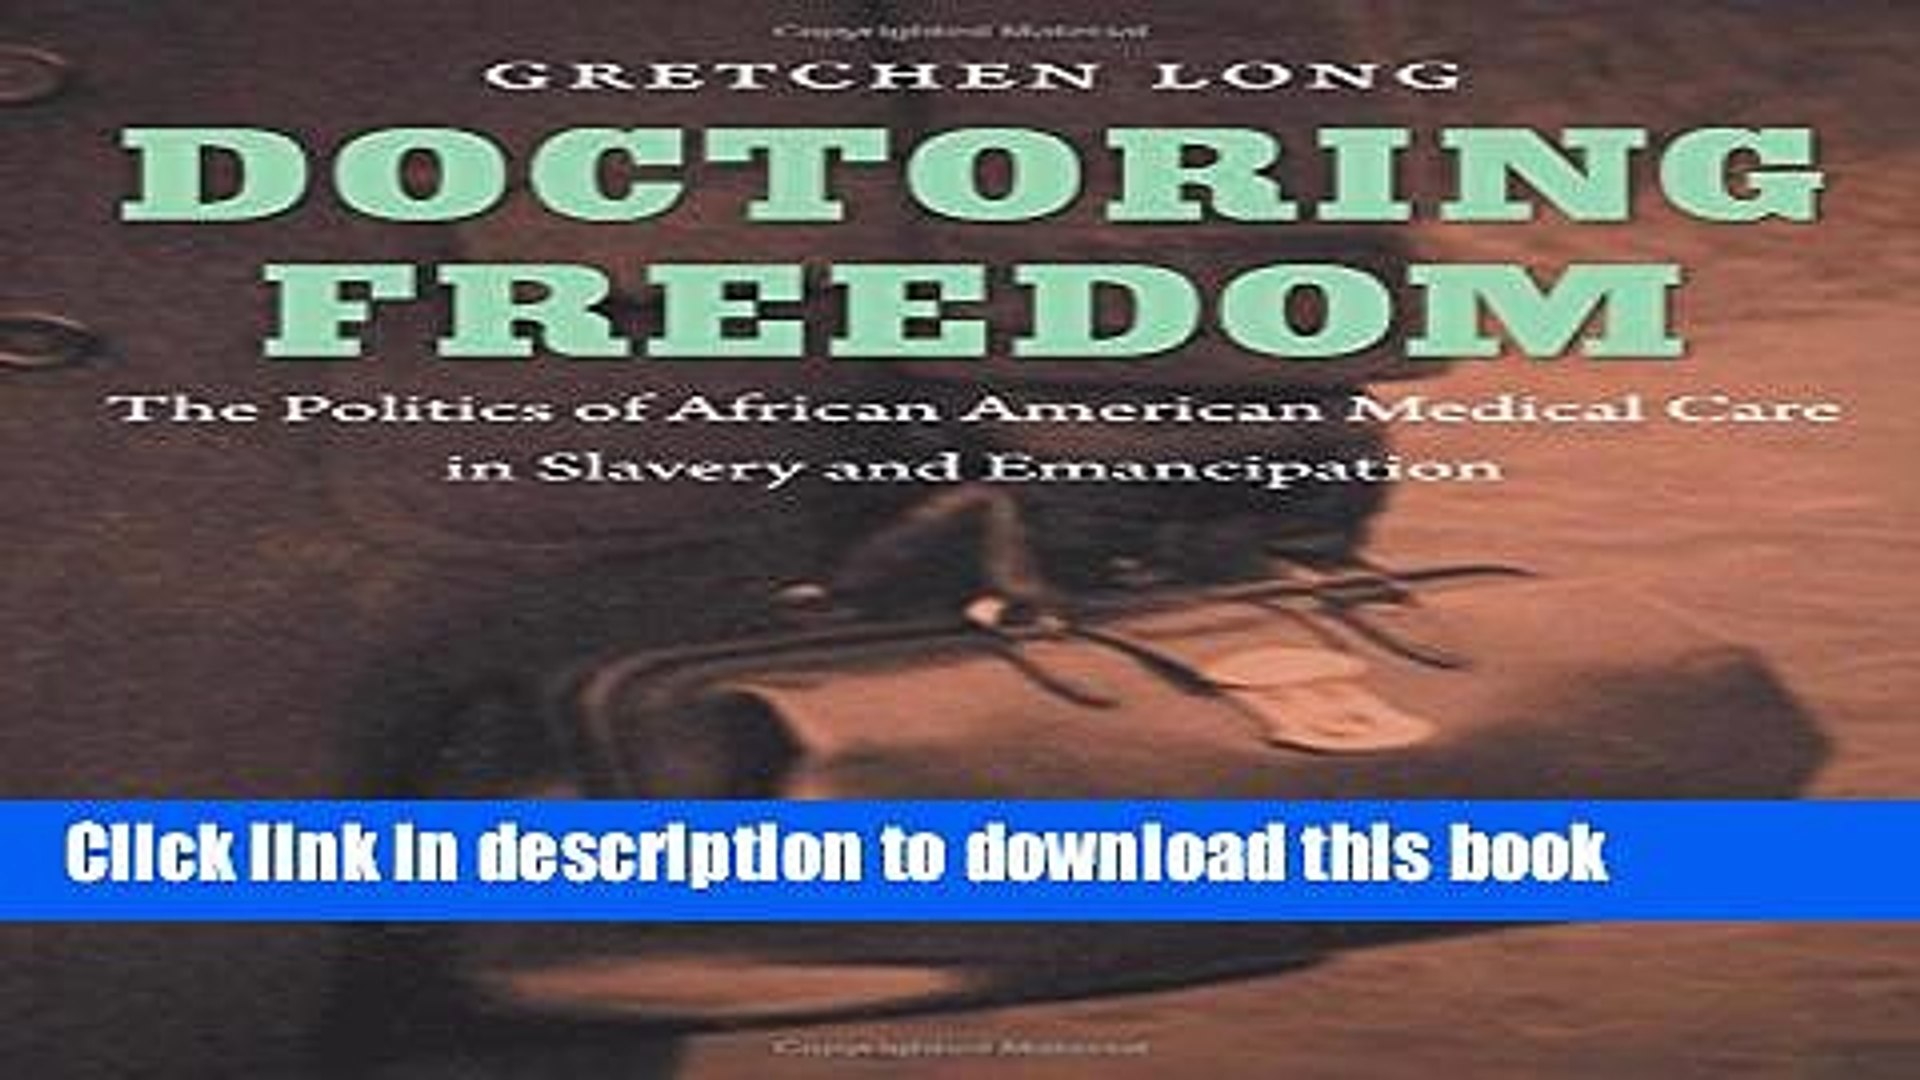 [Popular Books] Doctoring Freedom: The Politics of African American Medical Care in Slavery and